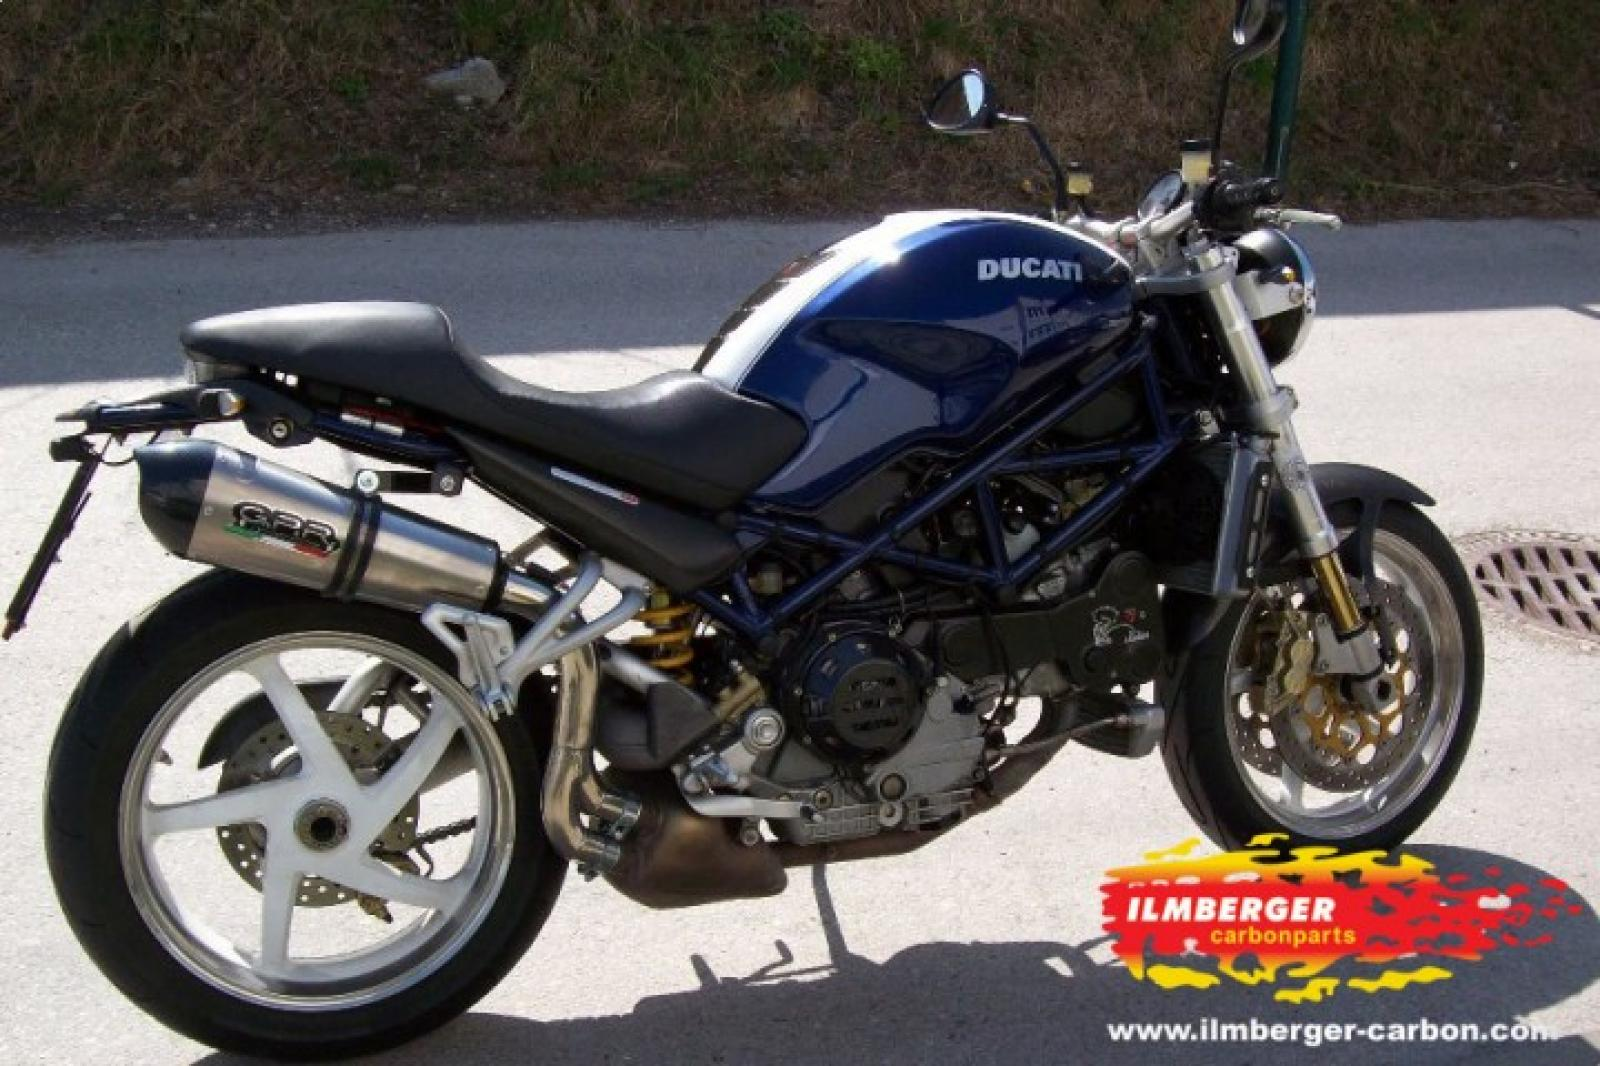 2003 Ducati Monster S4R: pics, specs and information